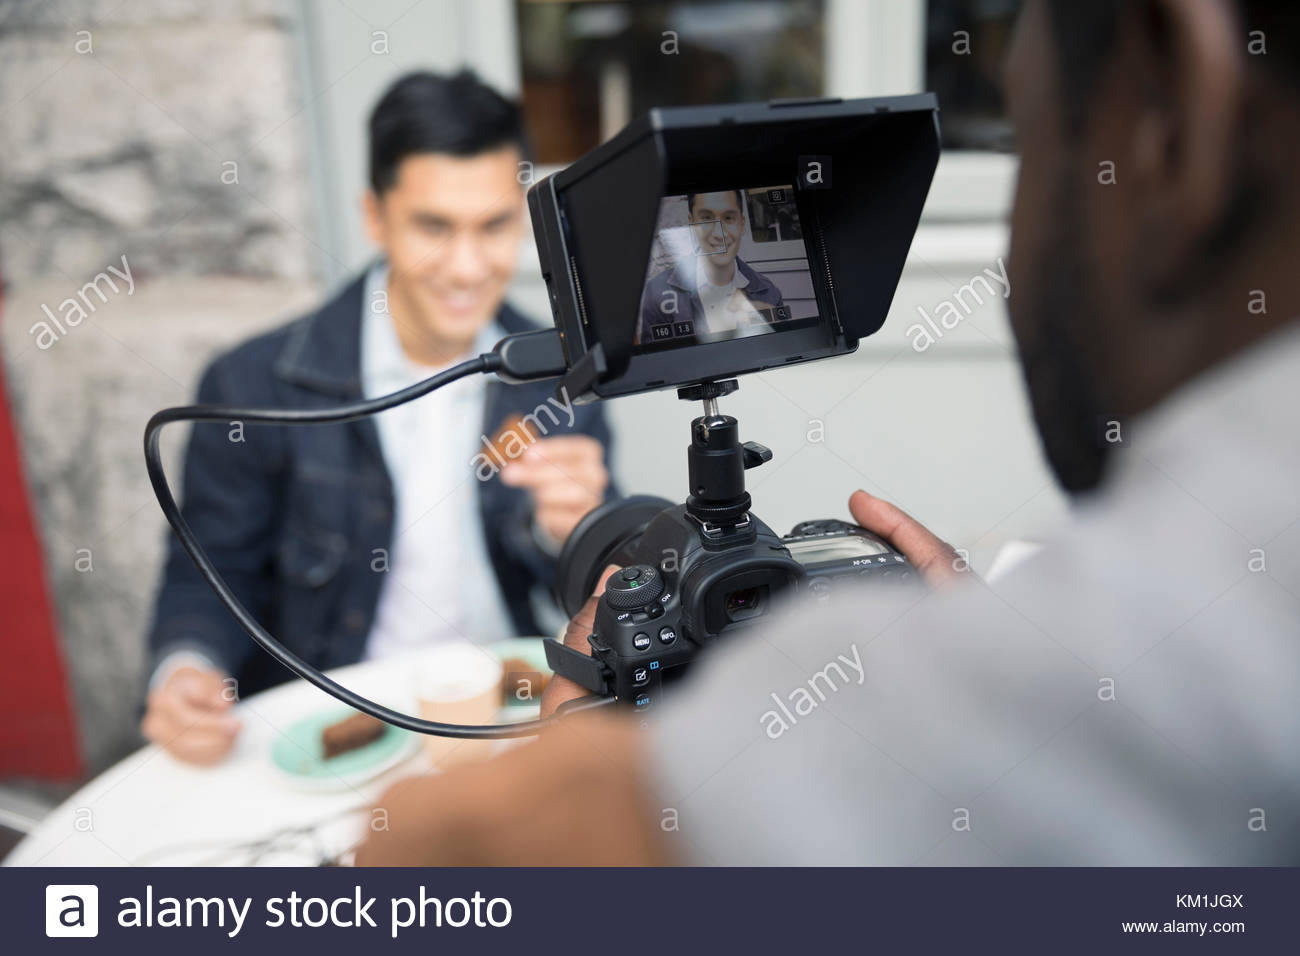 Man vlogging, videoing friend eating at sidewalk cafe with video camera - Stock Image